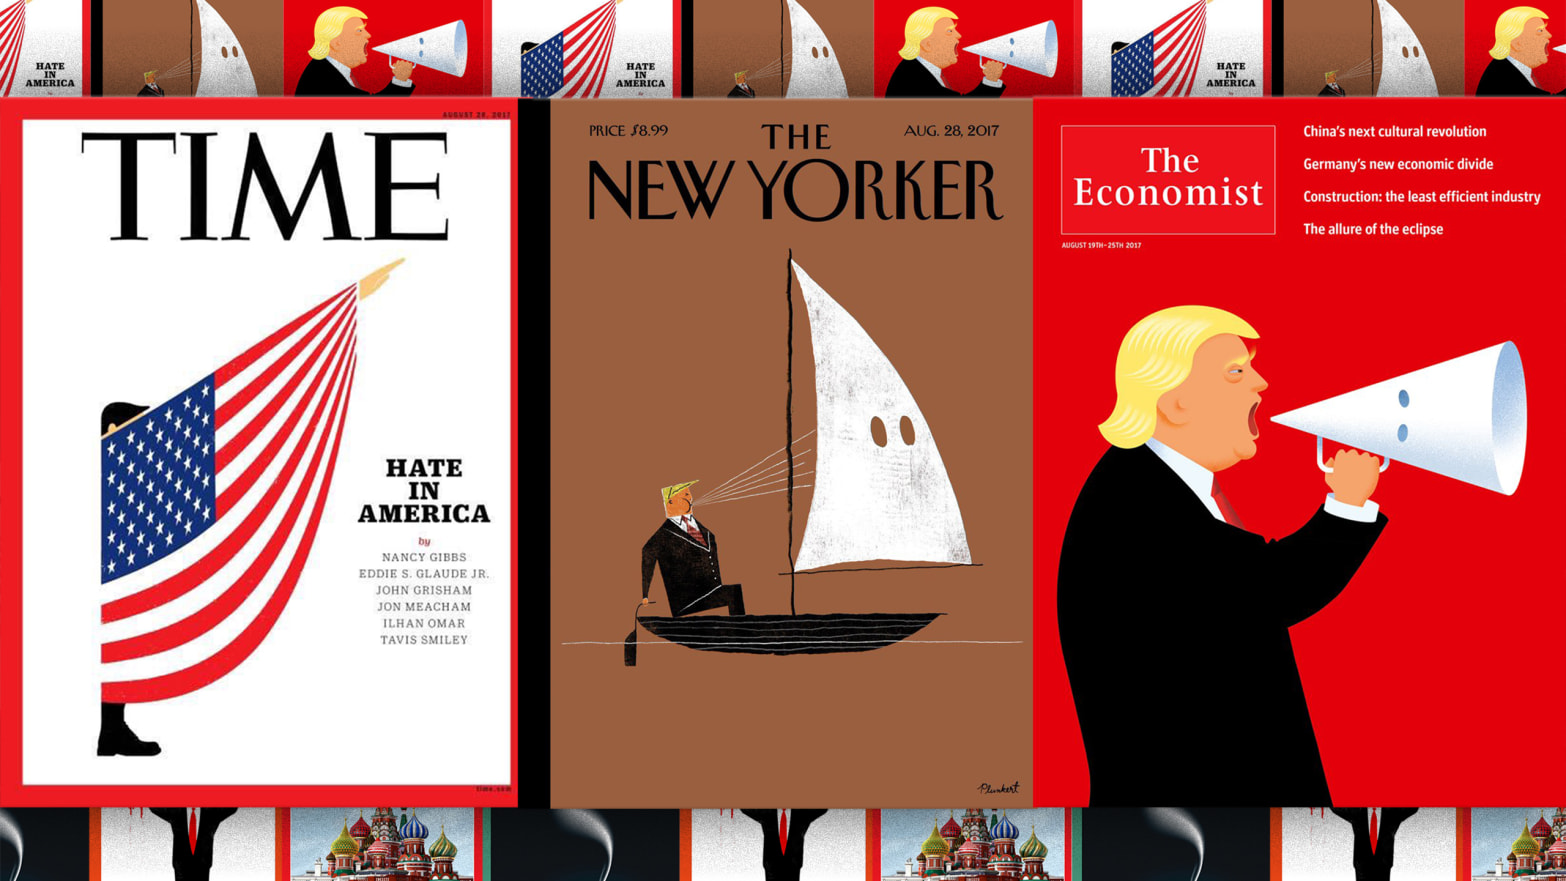 The New Yorker, Time and Economist magazines inevitably wanted to feature Donald Trump's white supremacy speech on their covers. Then the challenge was to find the perfect image.